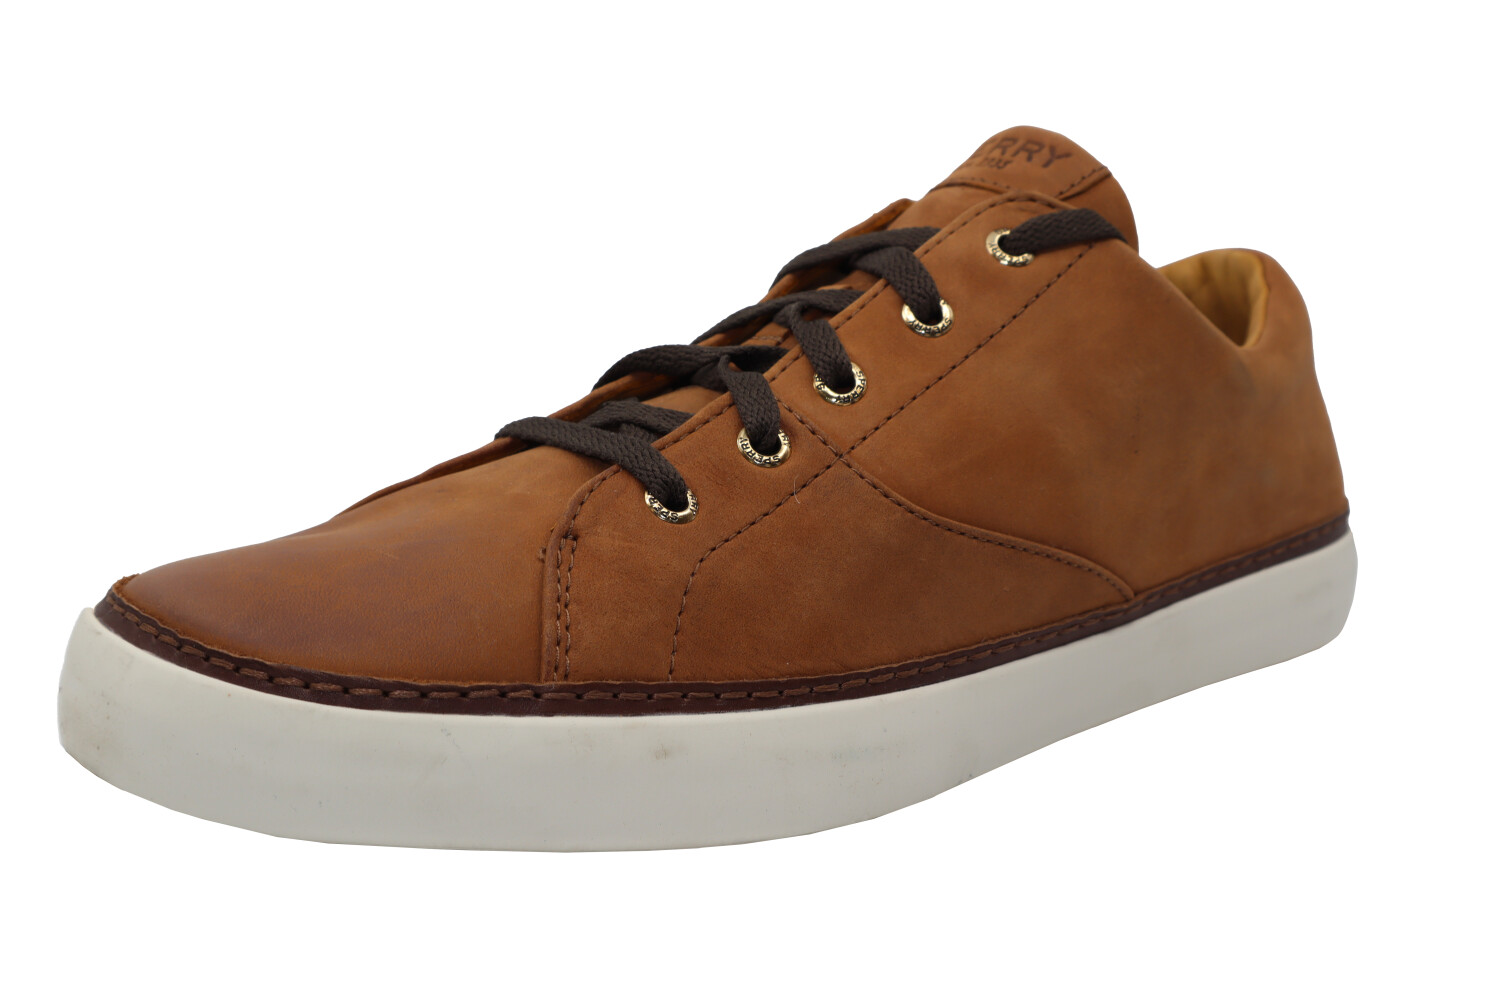 Sperry Men's Gold Cup Haven Caramel Ankle-High Leather Sneaker - 11.5M